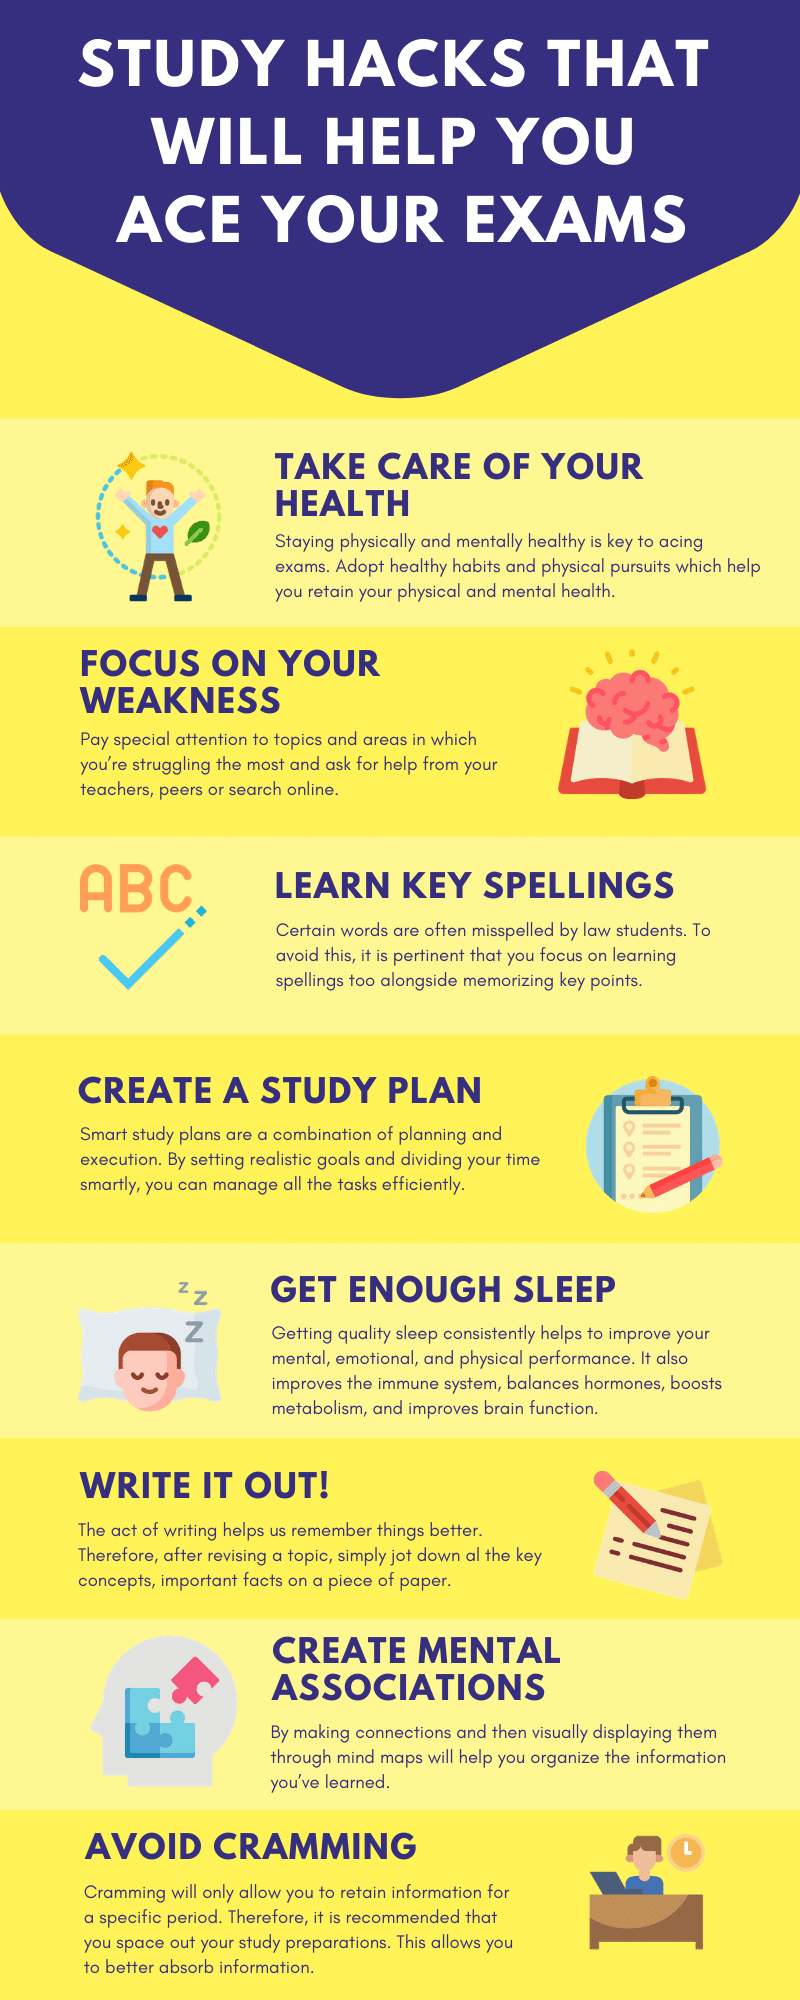 Study-Hacks-that-will-help-you-ace-your-exams-infographic